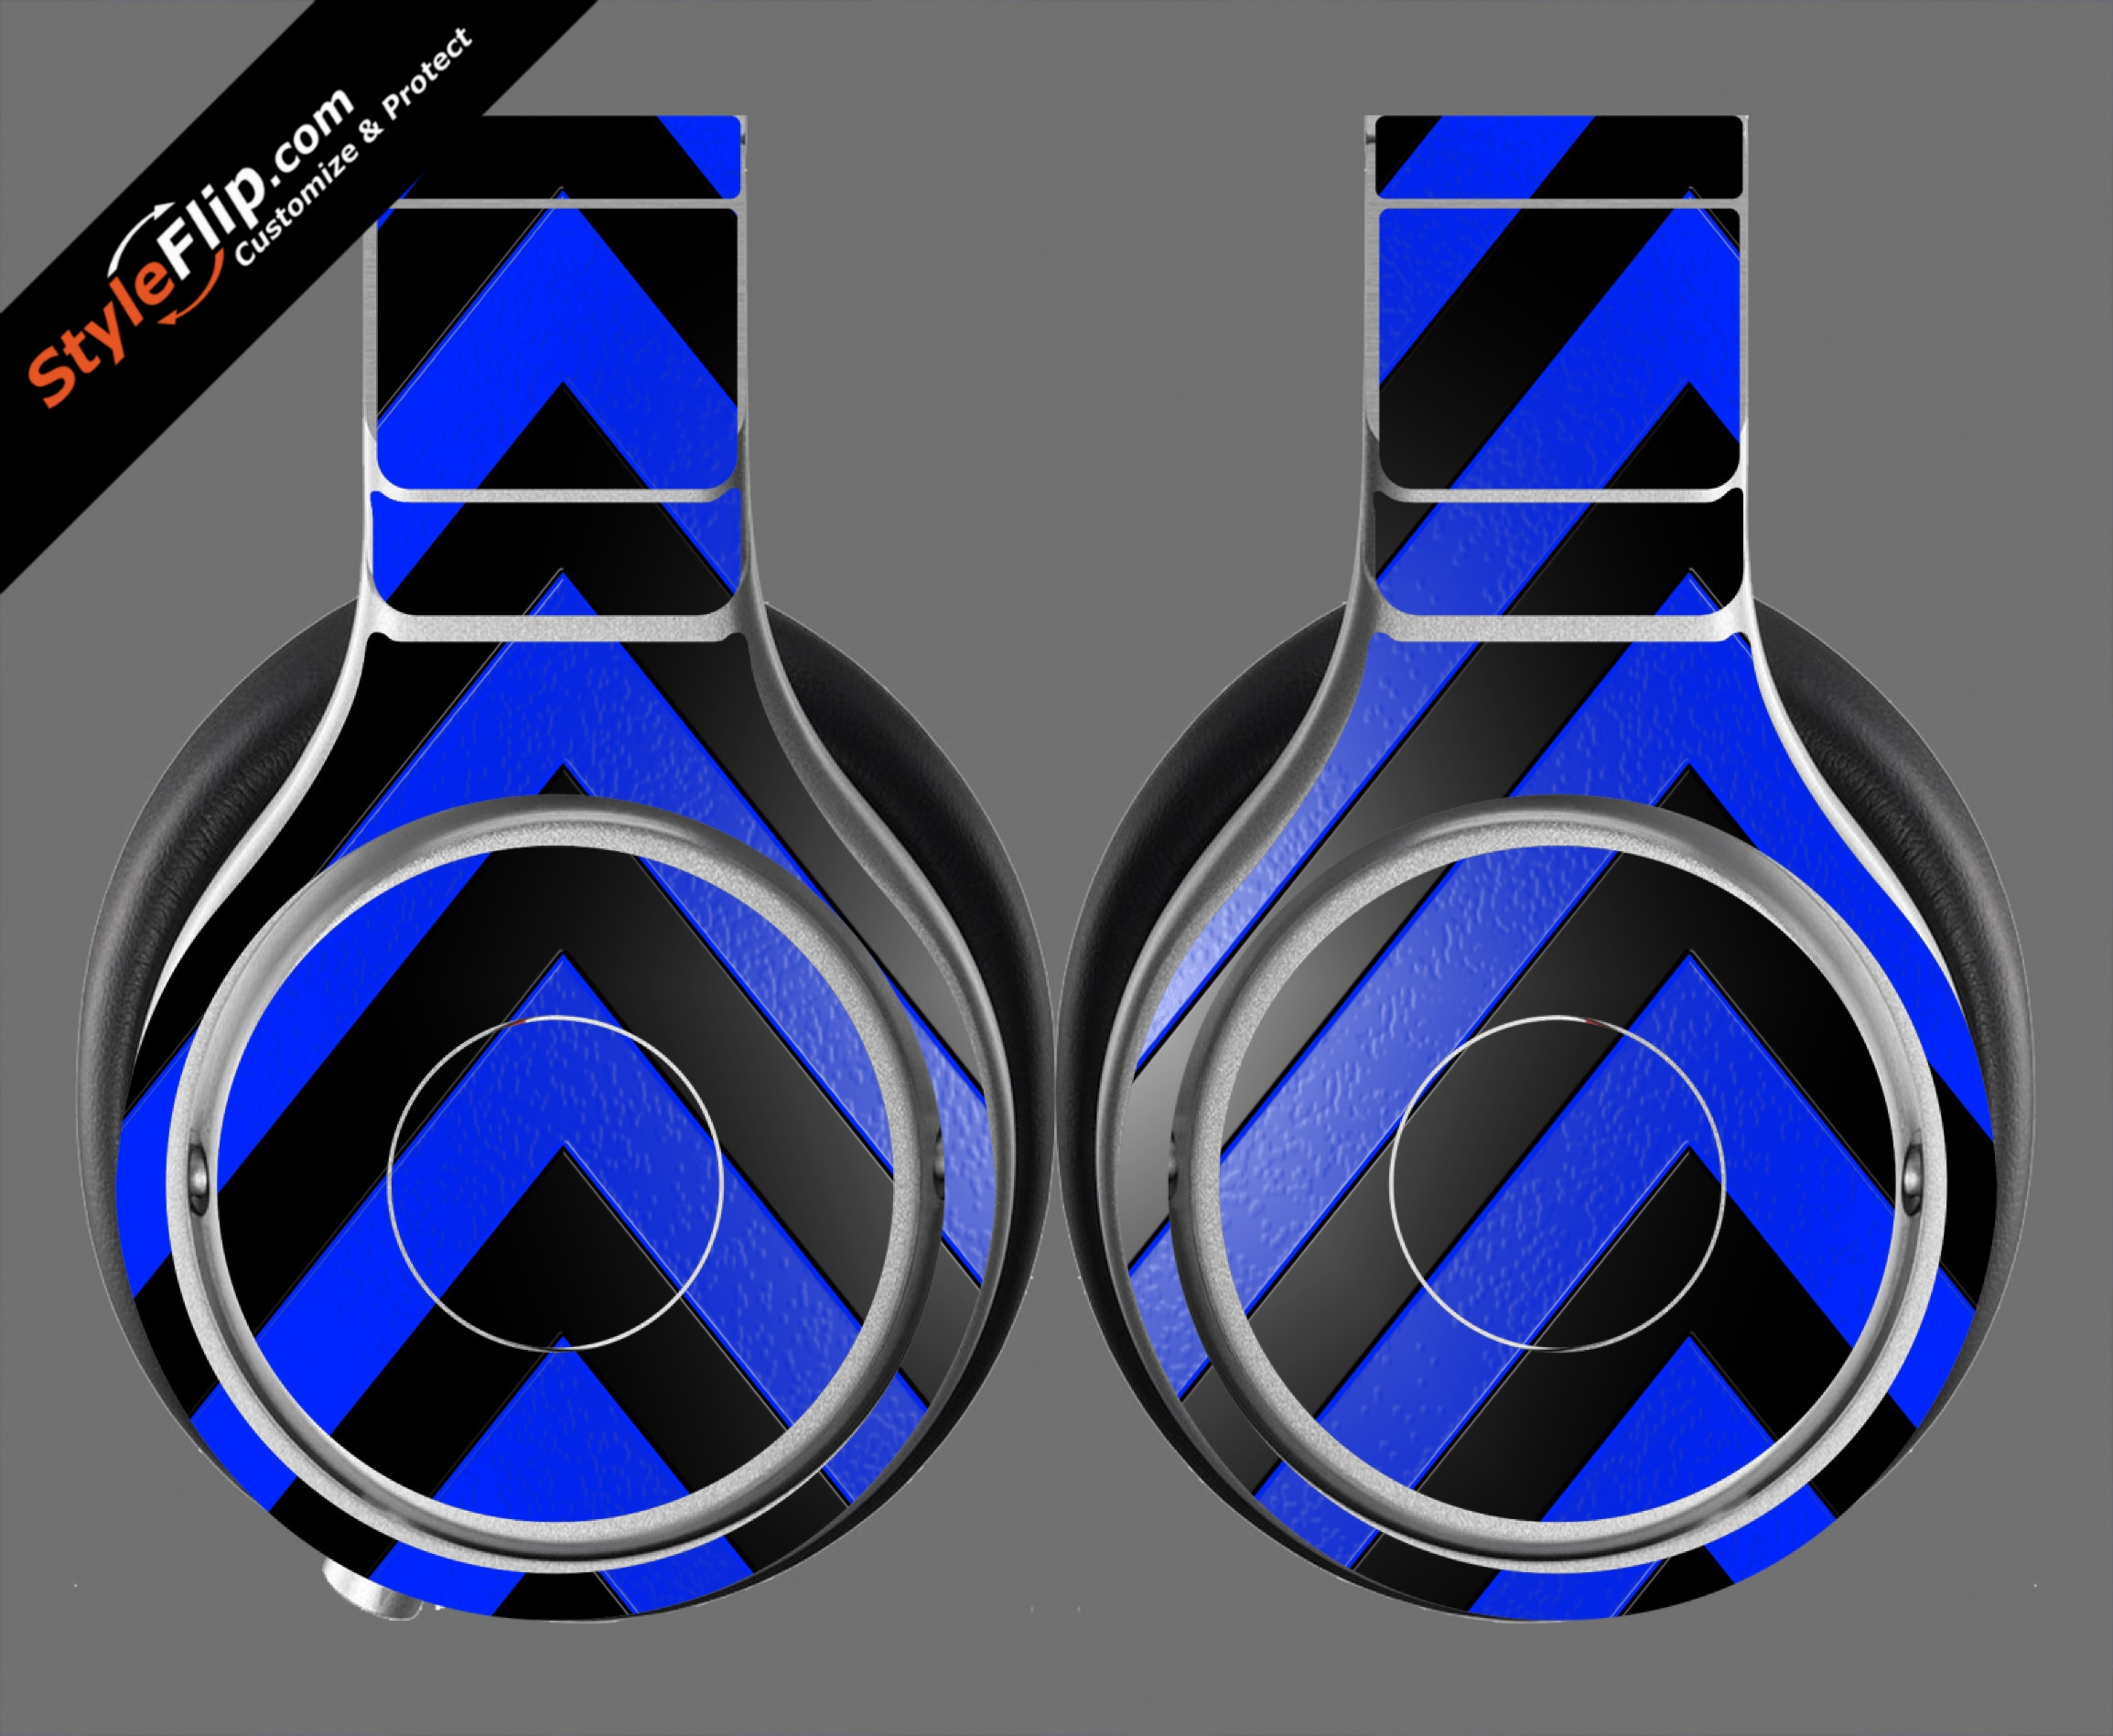 Black & Blue Chevron Beats By Dr. Dre Beats Pro Model